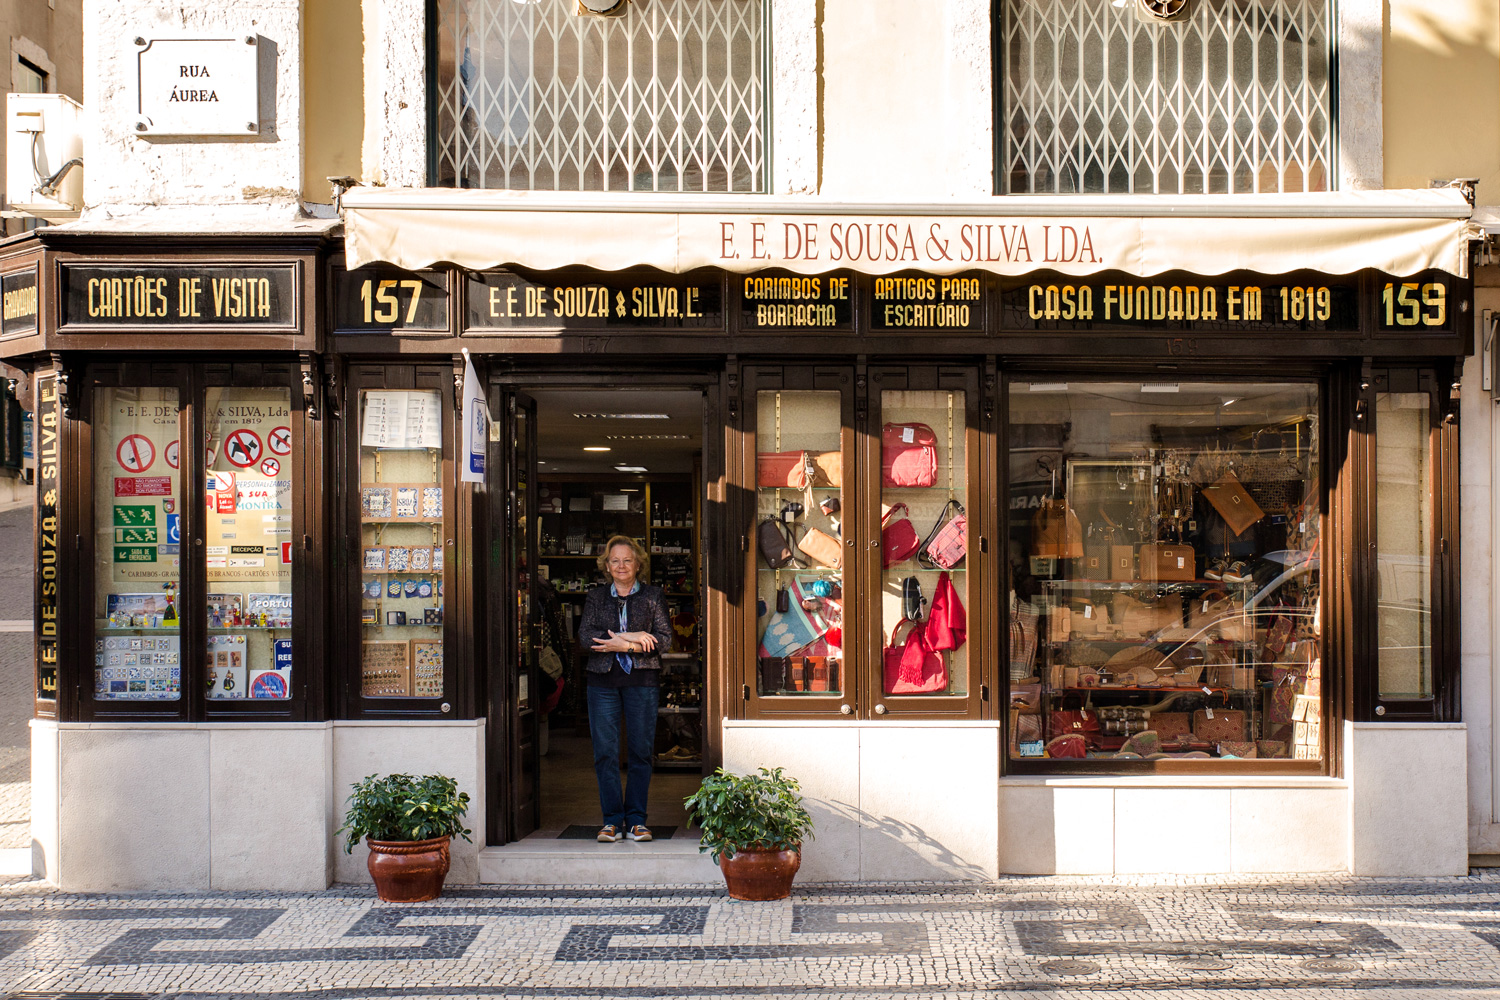 Manager Fernanda Igrejas before the nearly 200-year-old shop